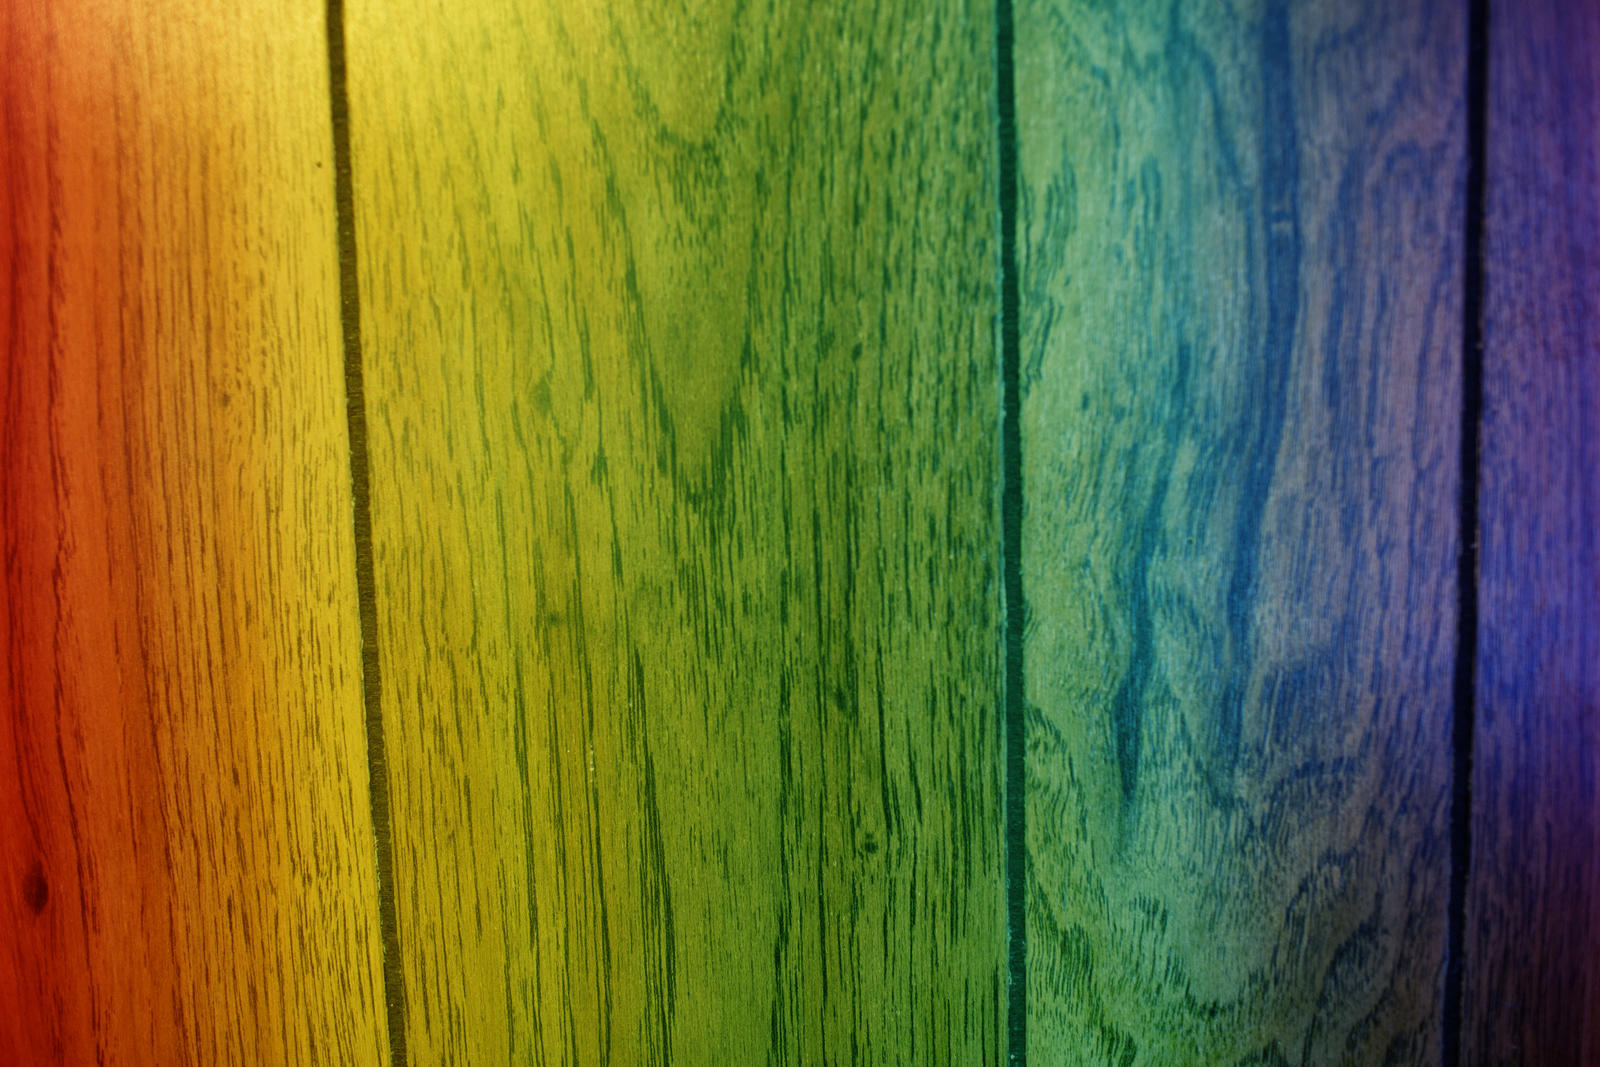 rainbow wood grain texture by VioletBreezeStock